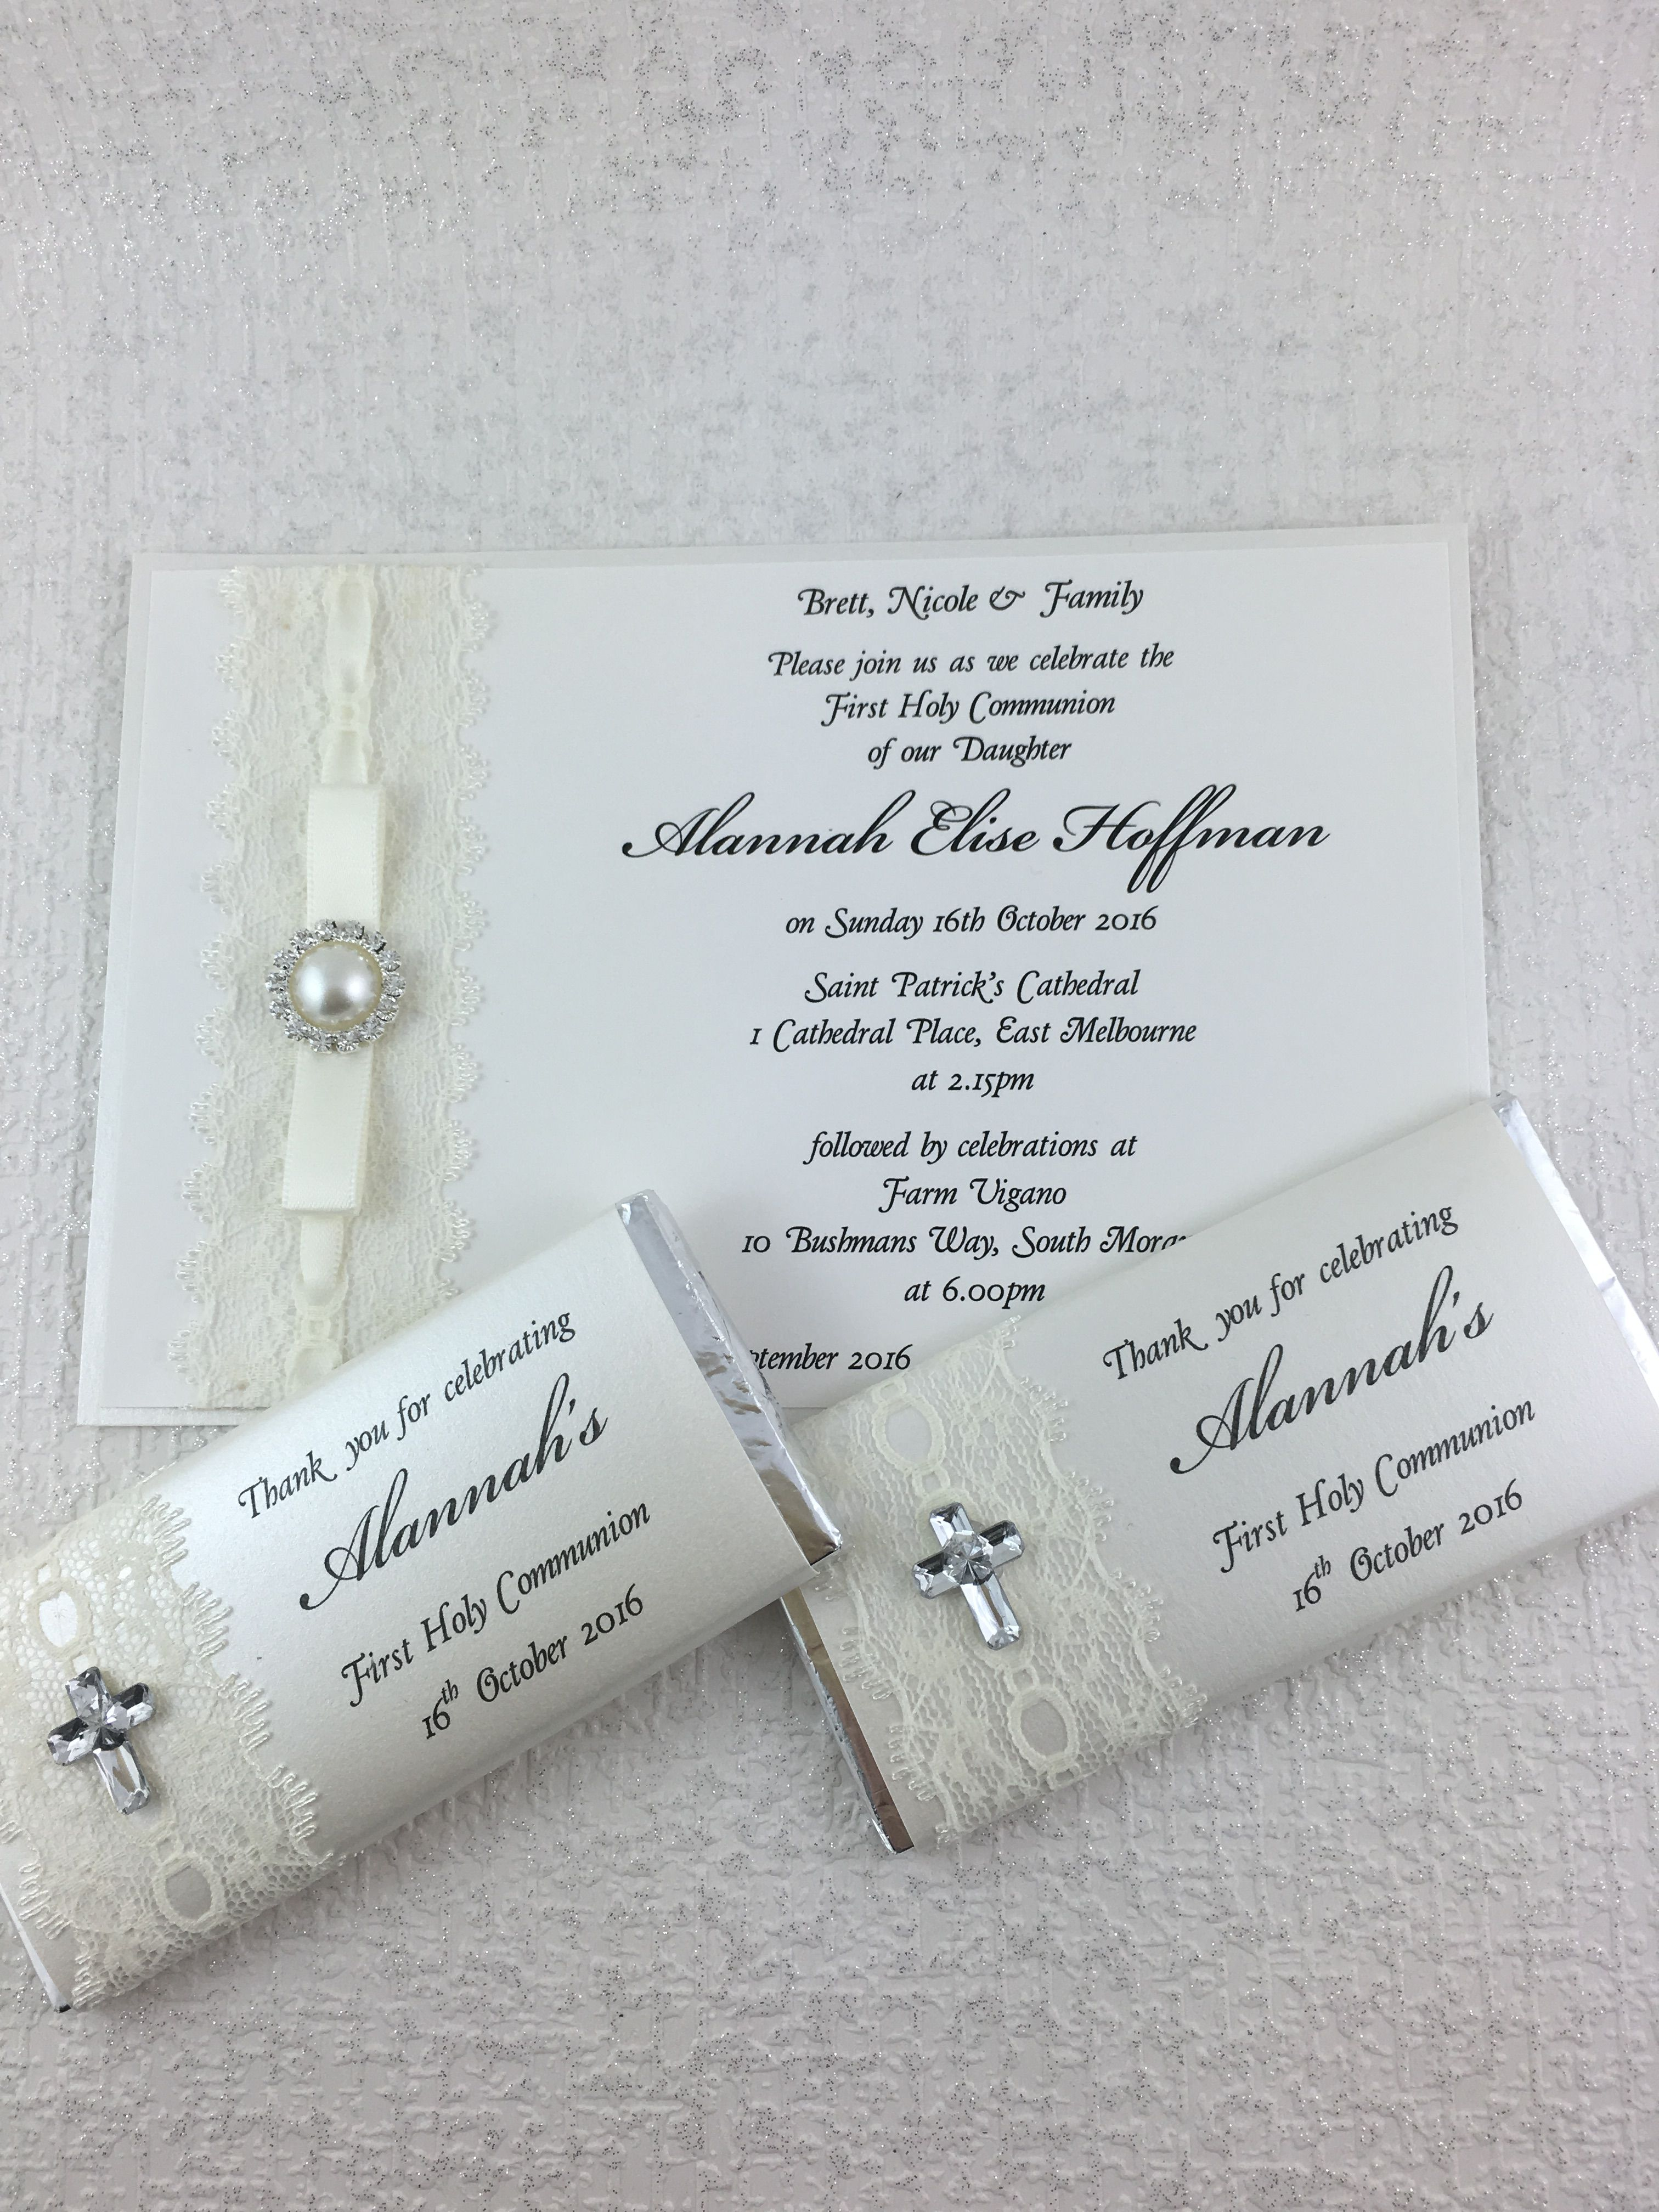 invitation wedding wording gifts%0A Lindt Chocolate  Chocolate Bars  Baptism Invitations  Invitation Ideas   Wedding Favours  Wedding Gifts  Confirmation  Communion  Christening